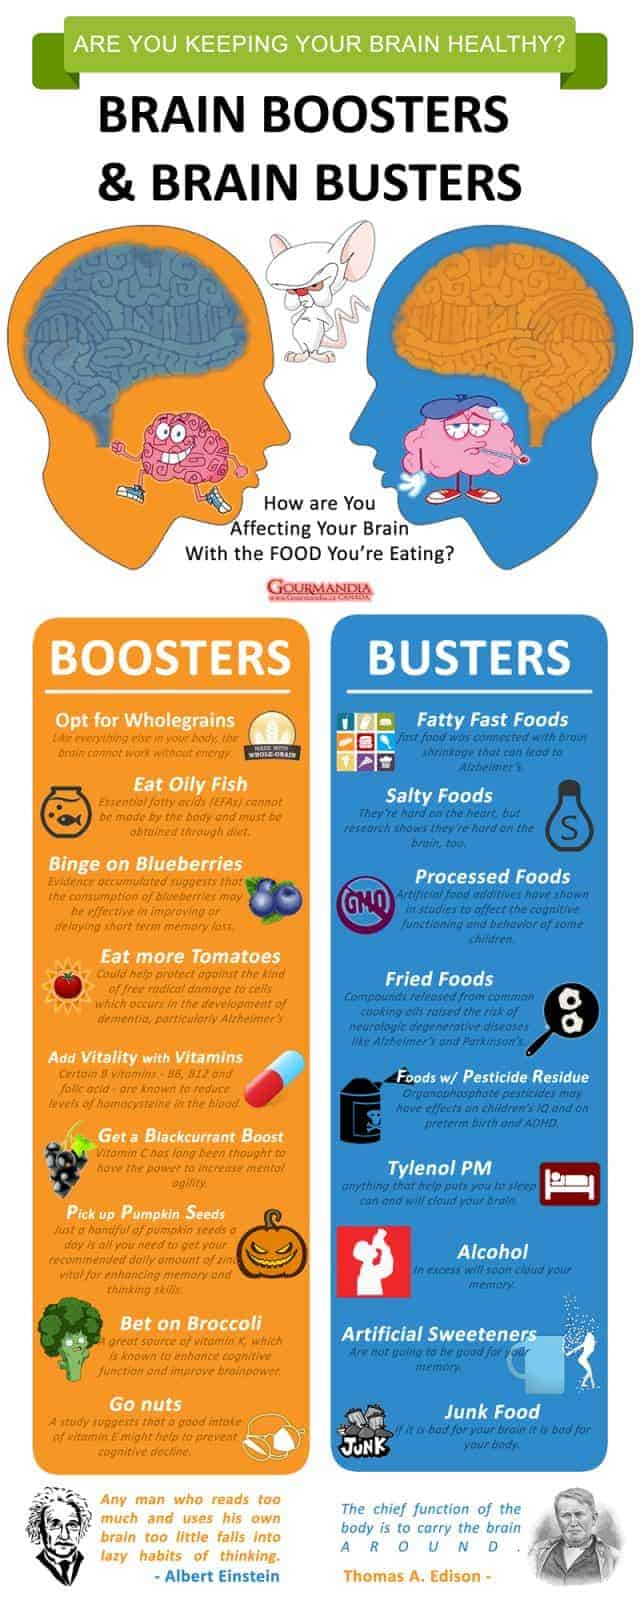 Brain Boosters and Brain Busters